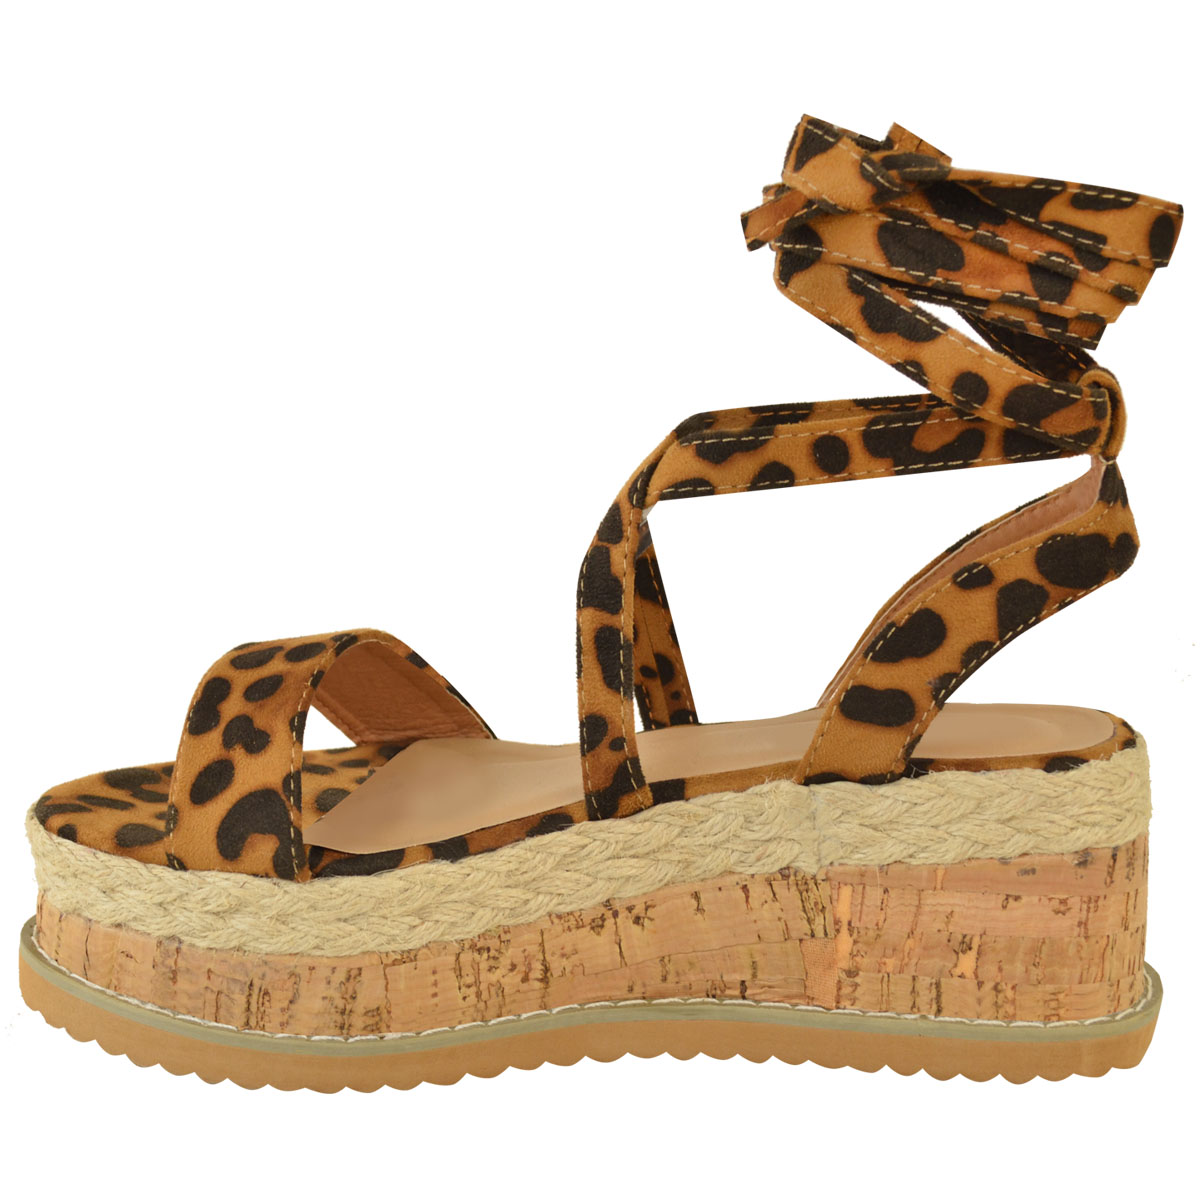 Womens-Ladies-Flatform-Cork-Espadrille-Wedge-Sandals-Ankle-Lace-Up-Shoes-Size